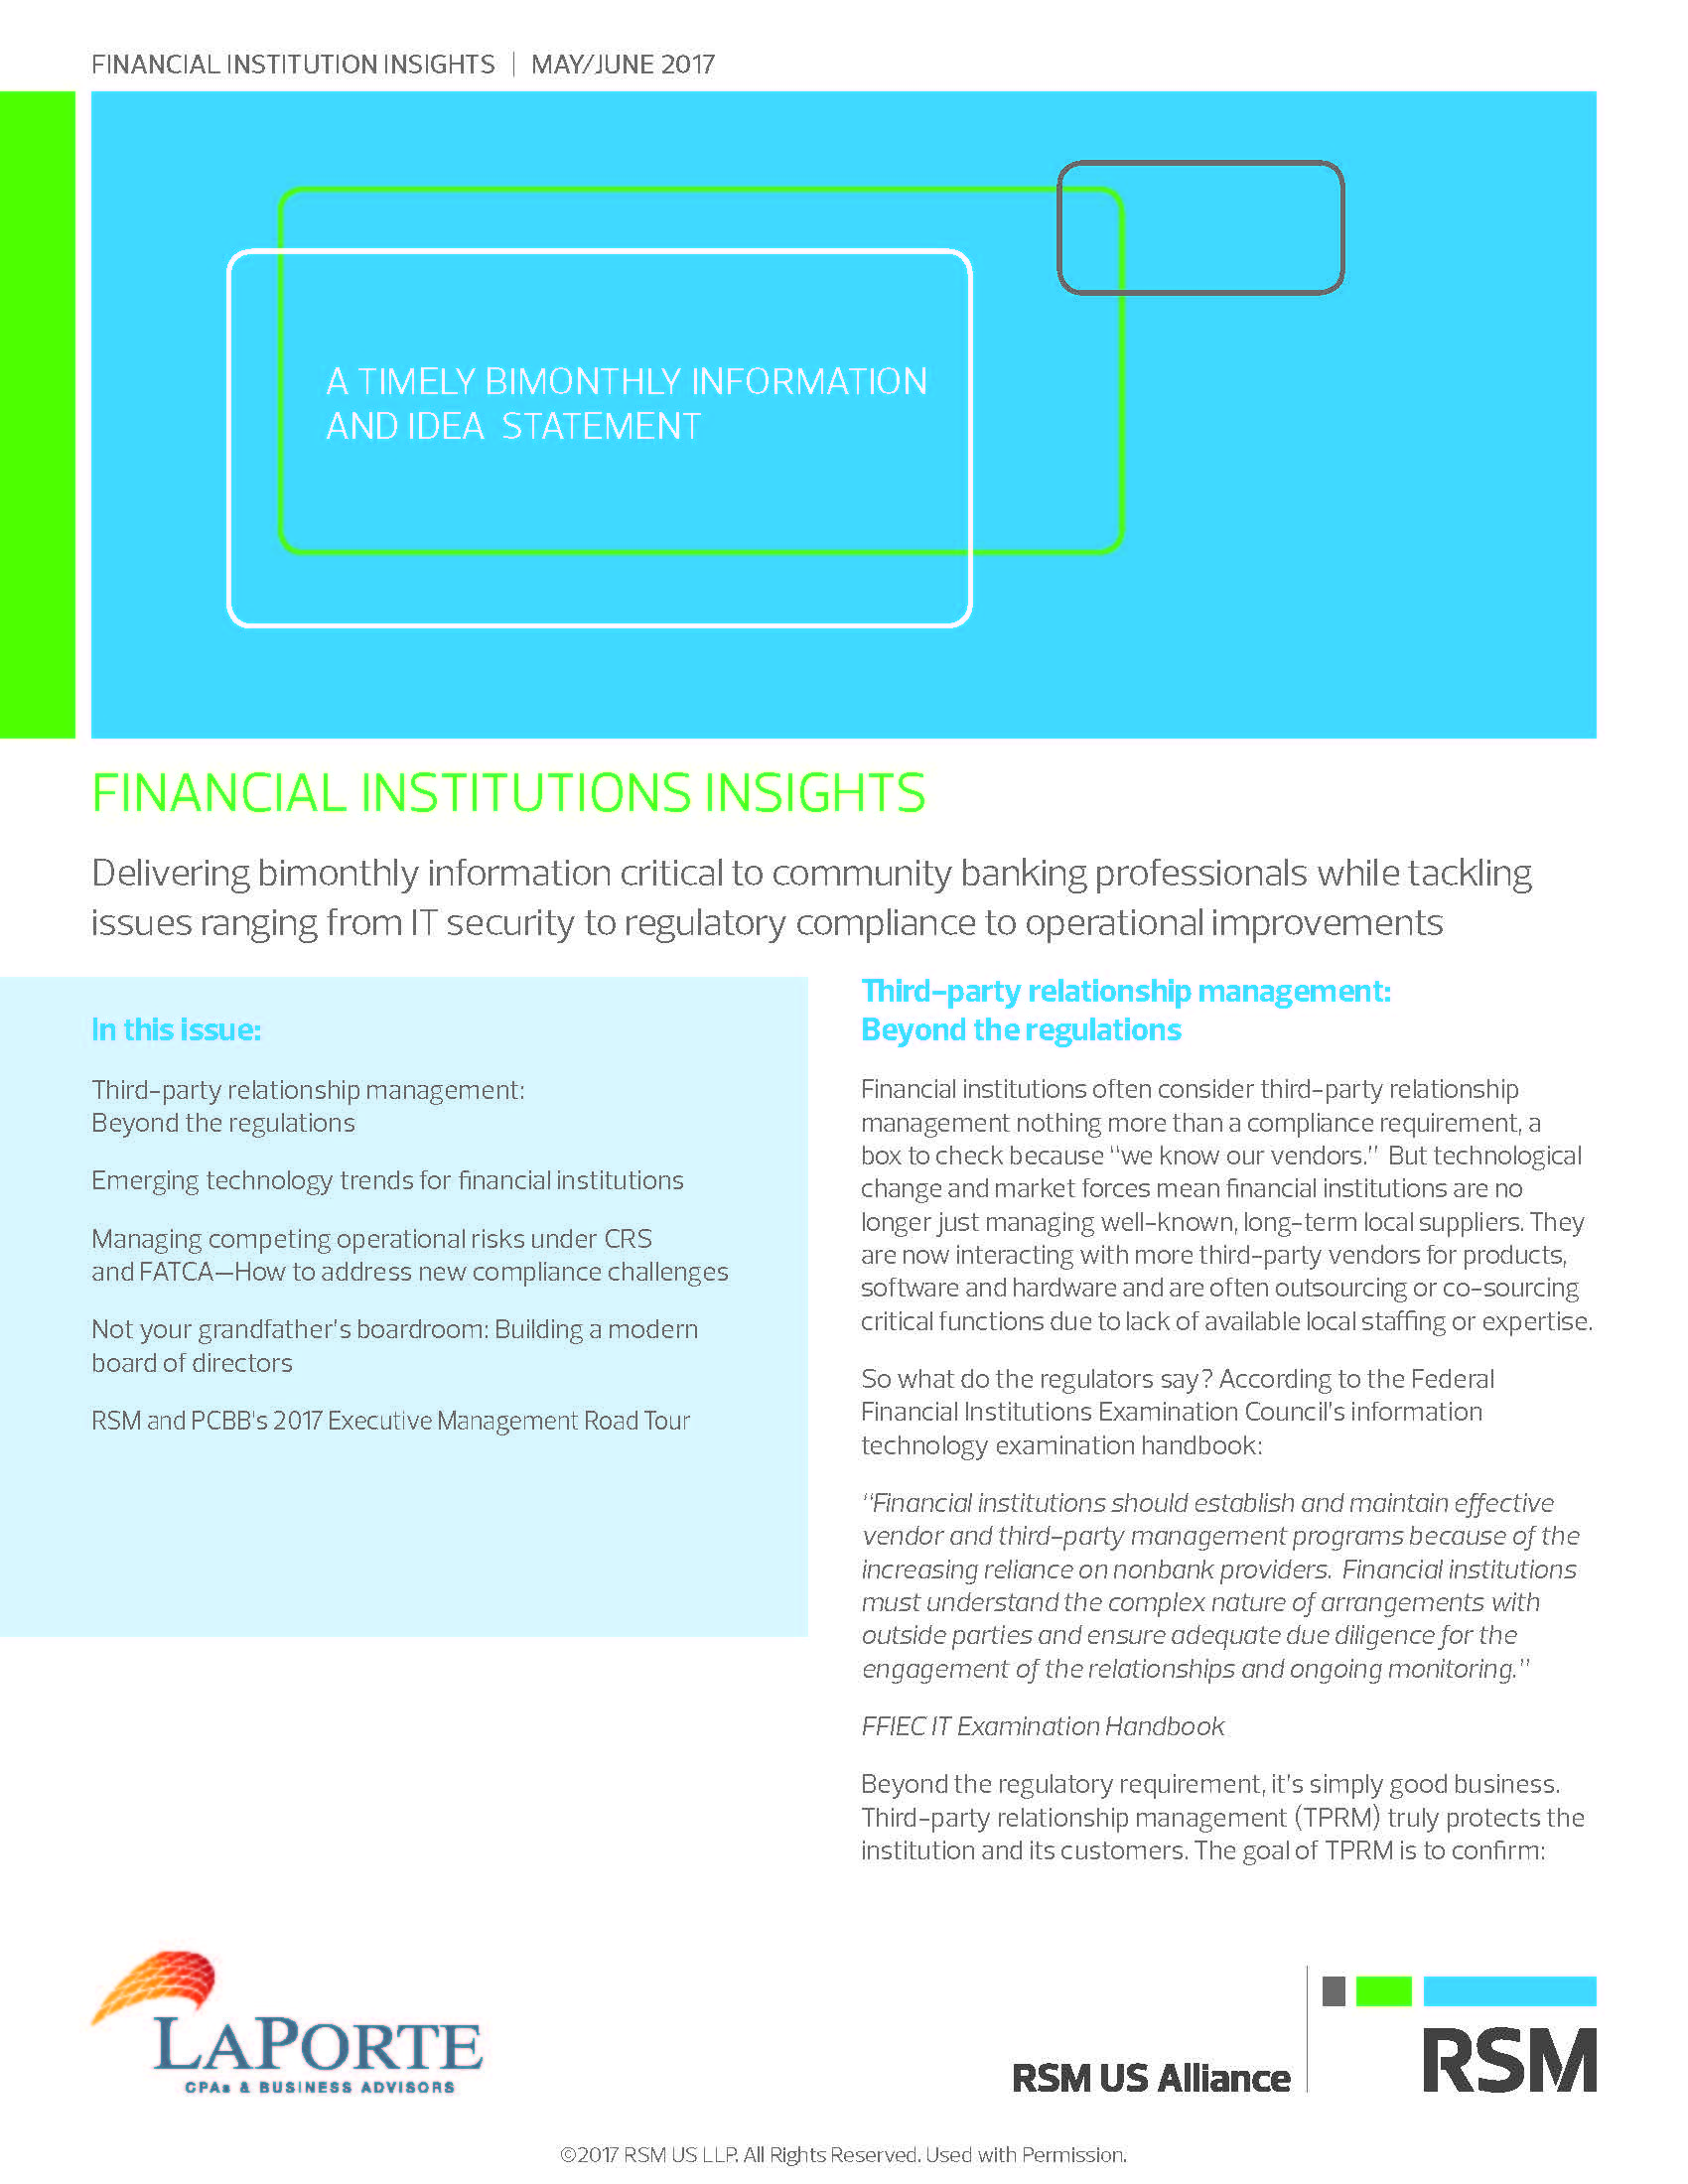 Financial Institutions Insights May Junel 2017